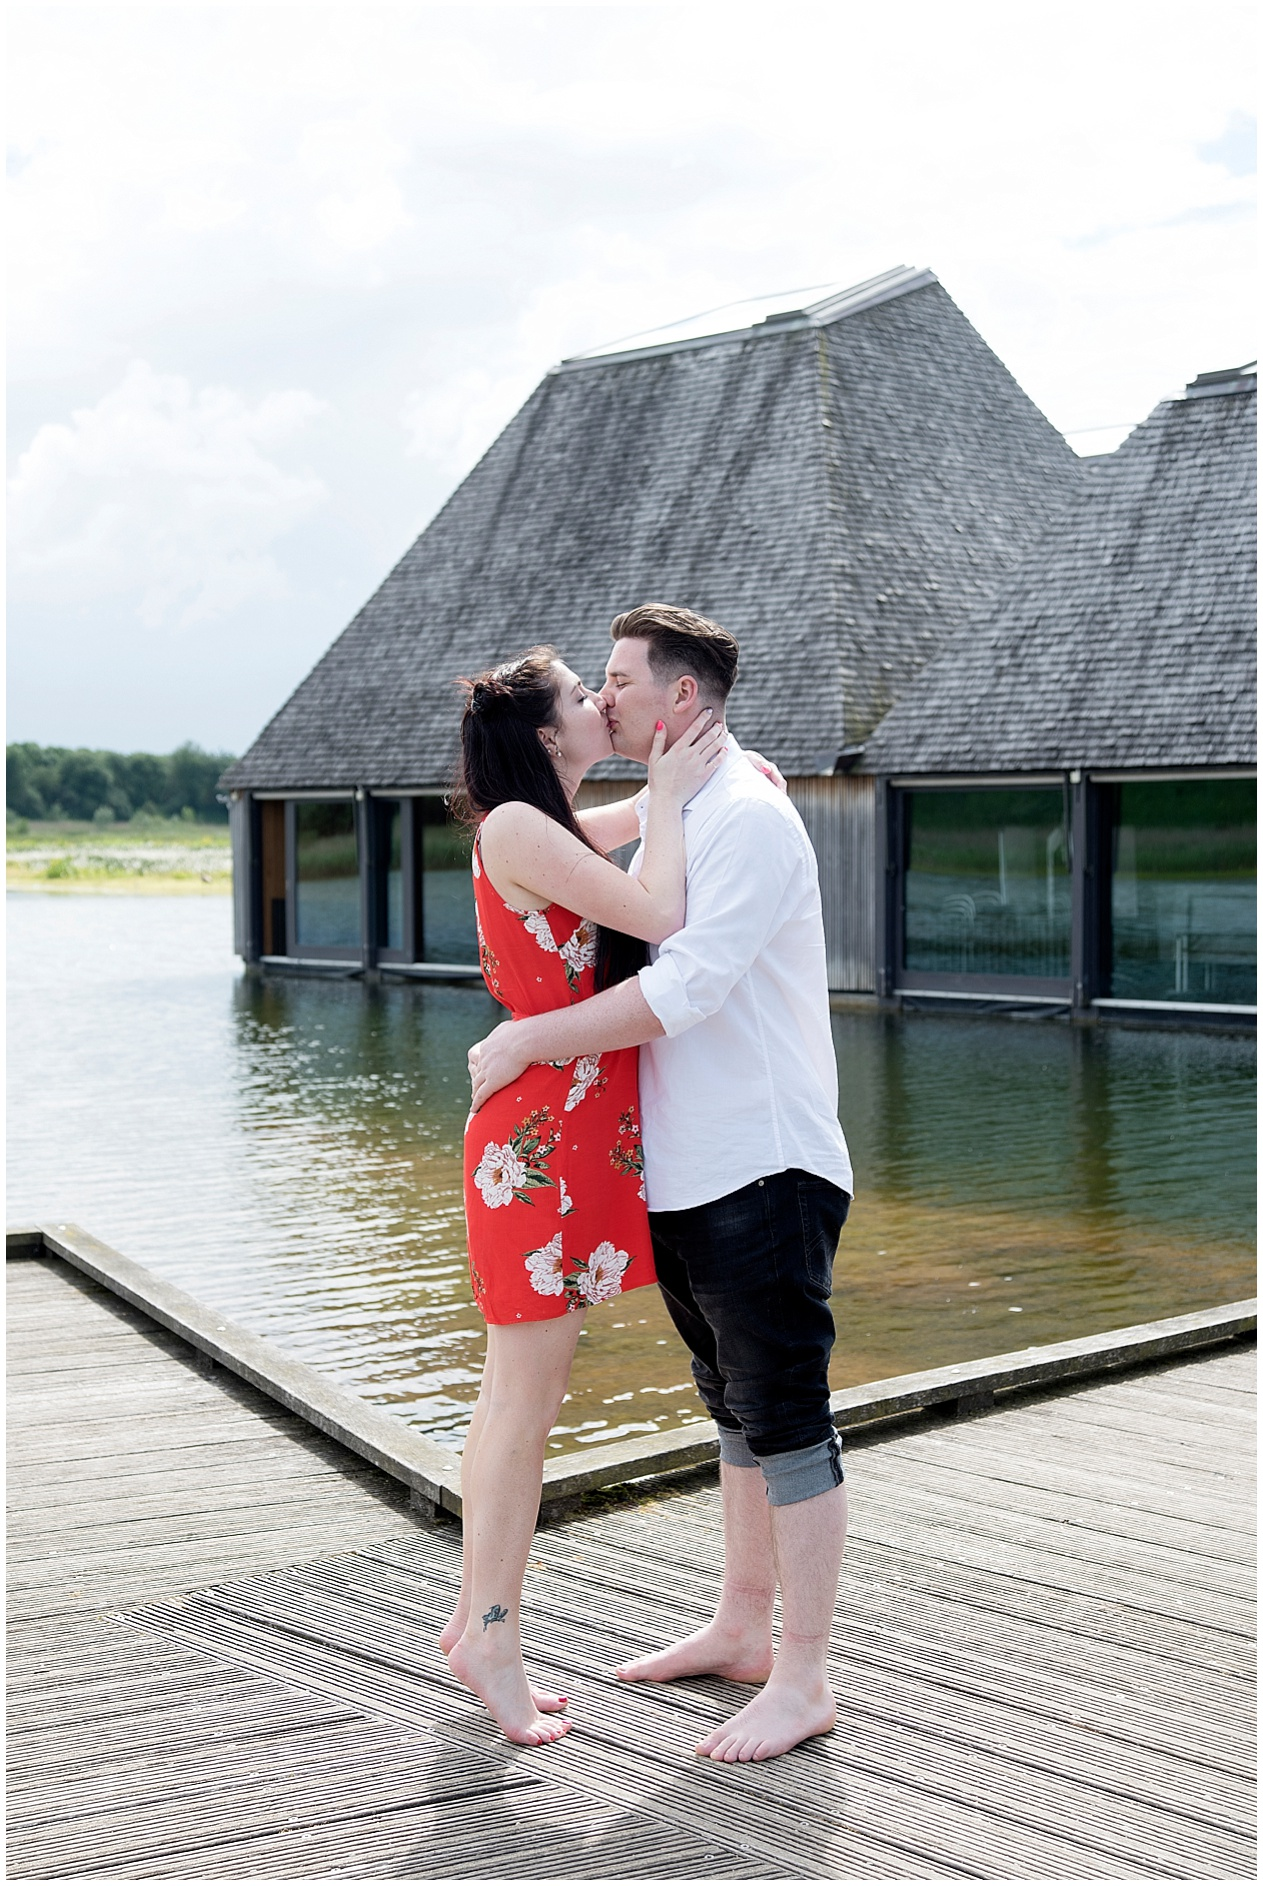 A couple share a kiss on their engagement photoshoot at Brockholes nature reserve in Preston.